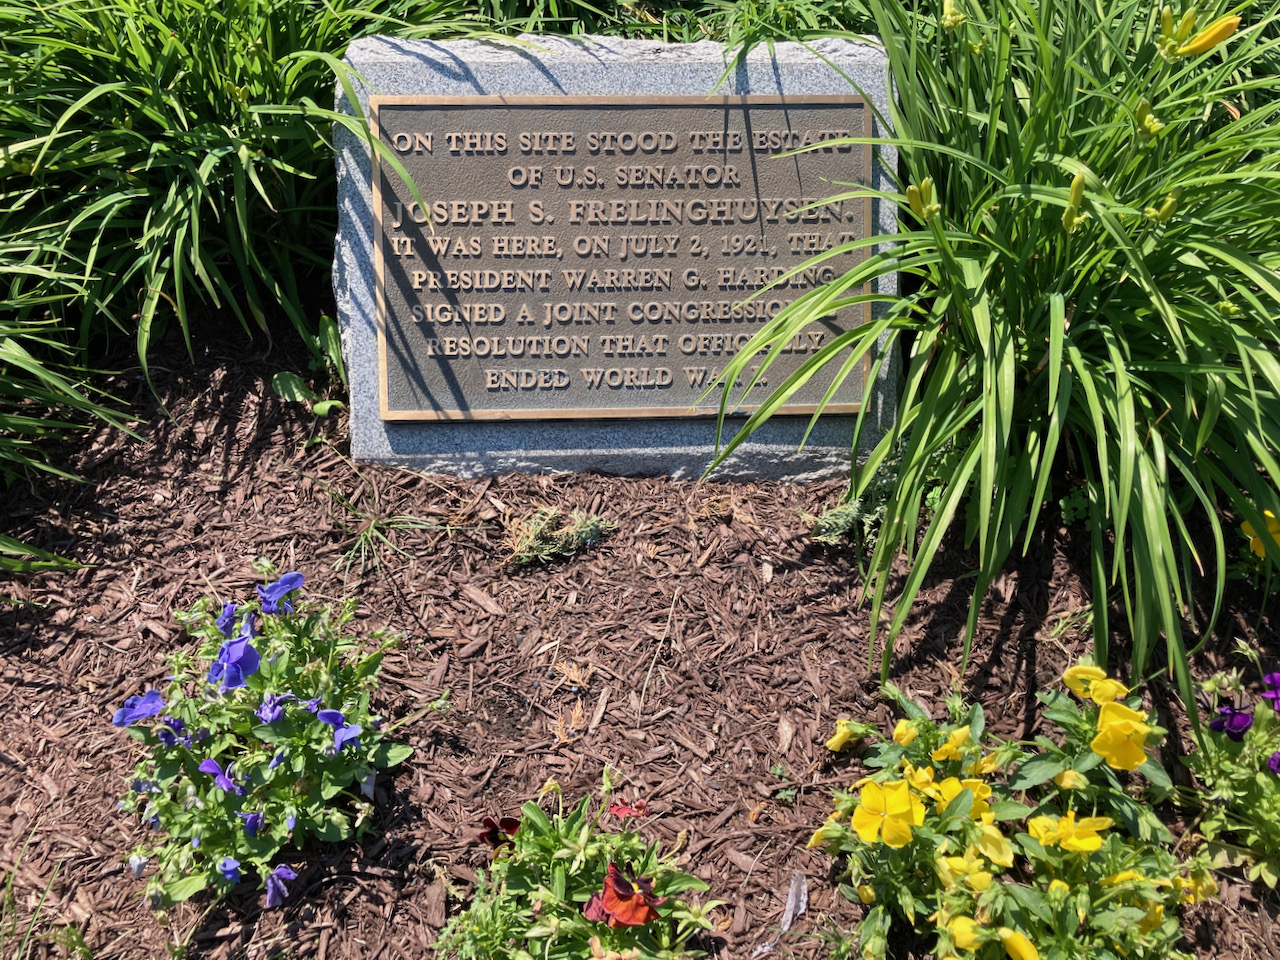 Plaque that reads ON THIS SITE STOOD THE ESTATE OF US SENATOR JOSEPH S. FRELINGHUYSEN. IT WAS HERE, ON JULY 2, 1921, THAT PRESIDENT WARREN G. HARDING SIGNED A JOINT CONGRESSIONAL RESOLUTION THAT OFFICIALLY ENDED WORLD WAR I.